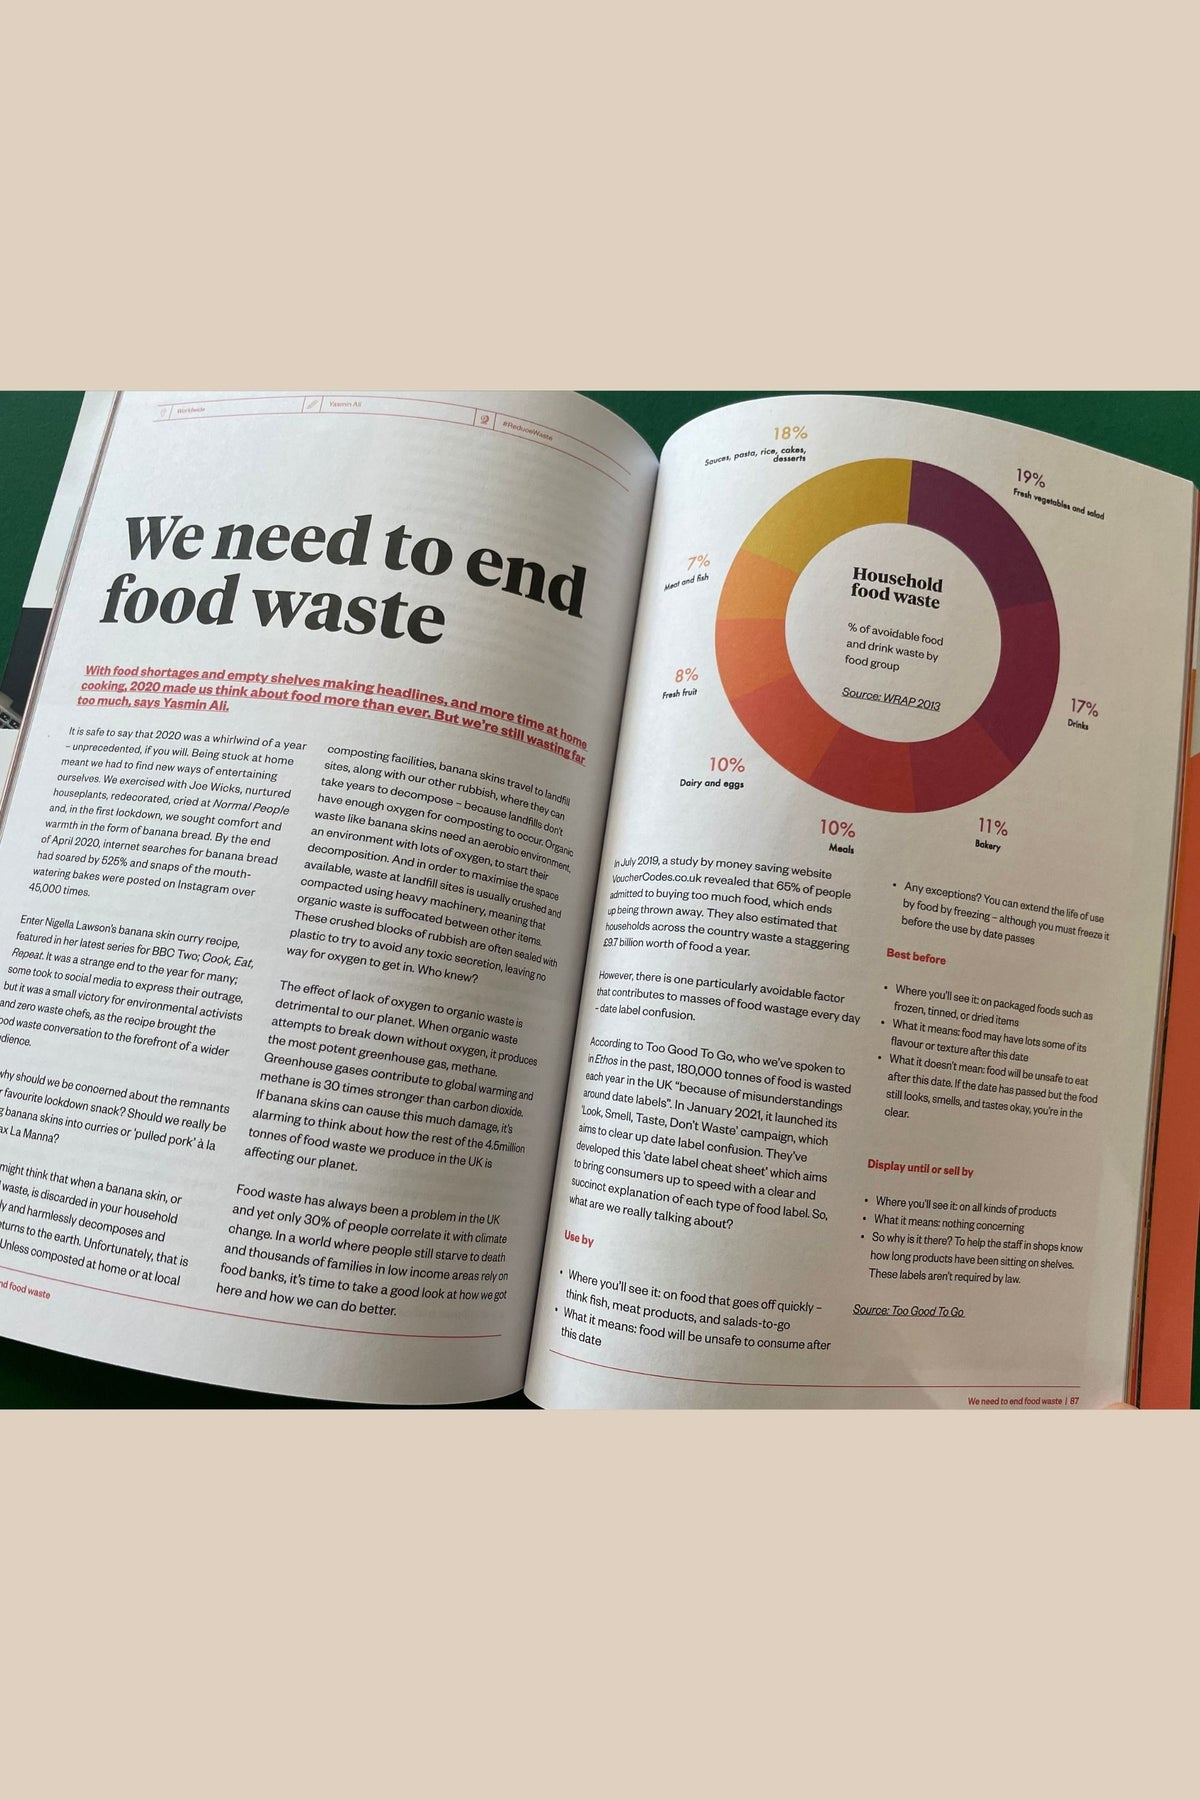 Ethos magazine Issue 14 - we need to end food waste